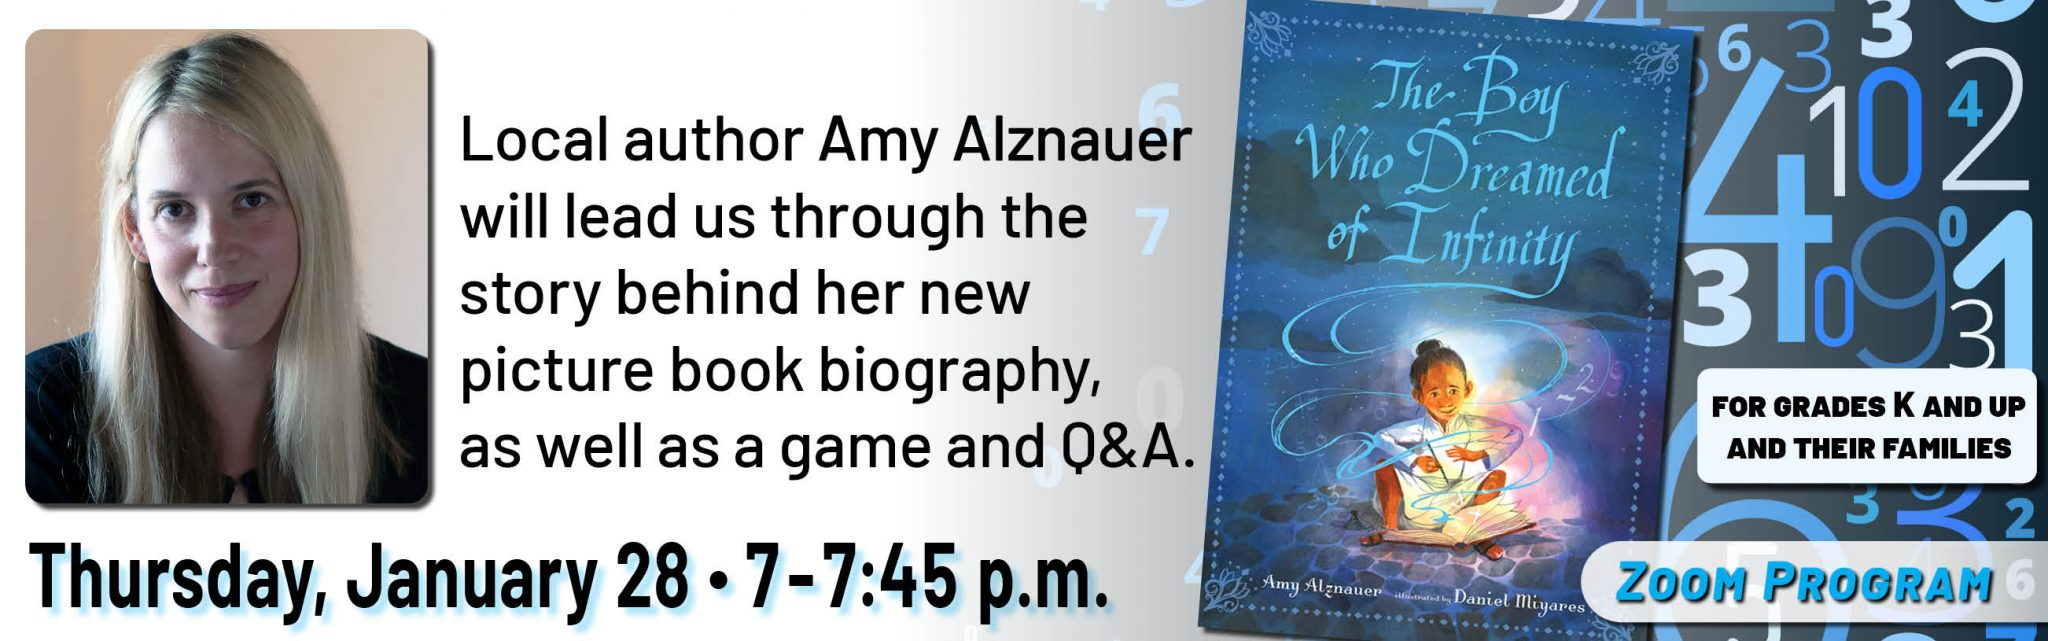 Zoom Program: The Boy Who Dreamed of Infinity author event, Thursday, January 28 from 7 to 7:45 p.m.